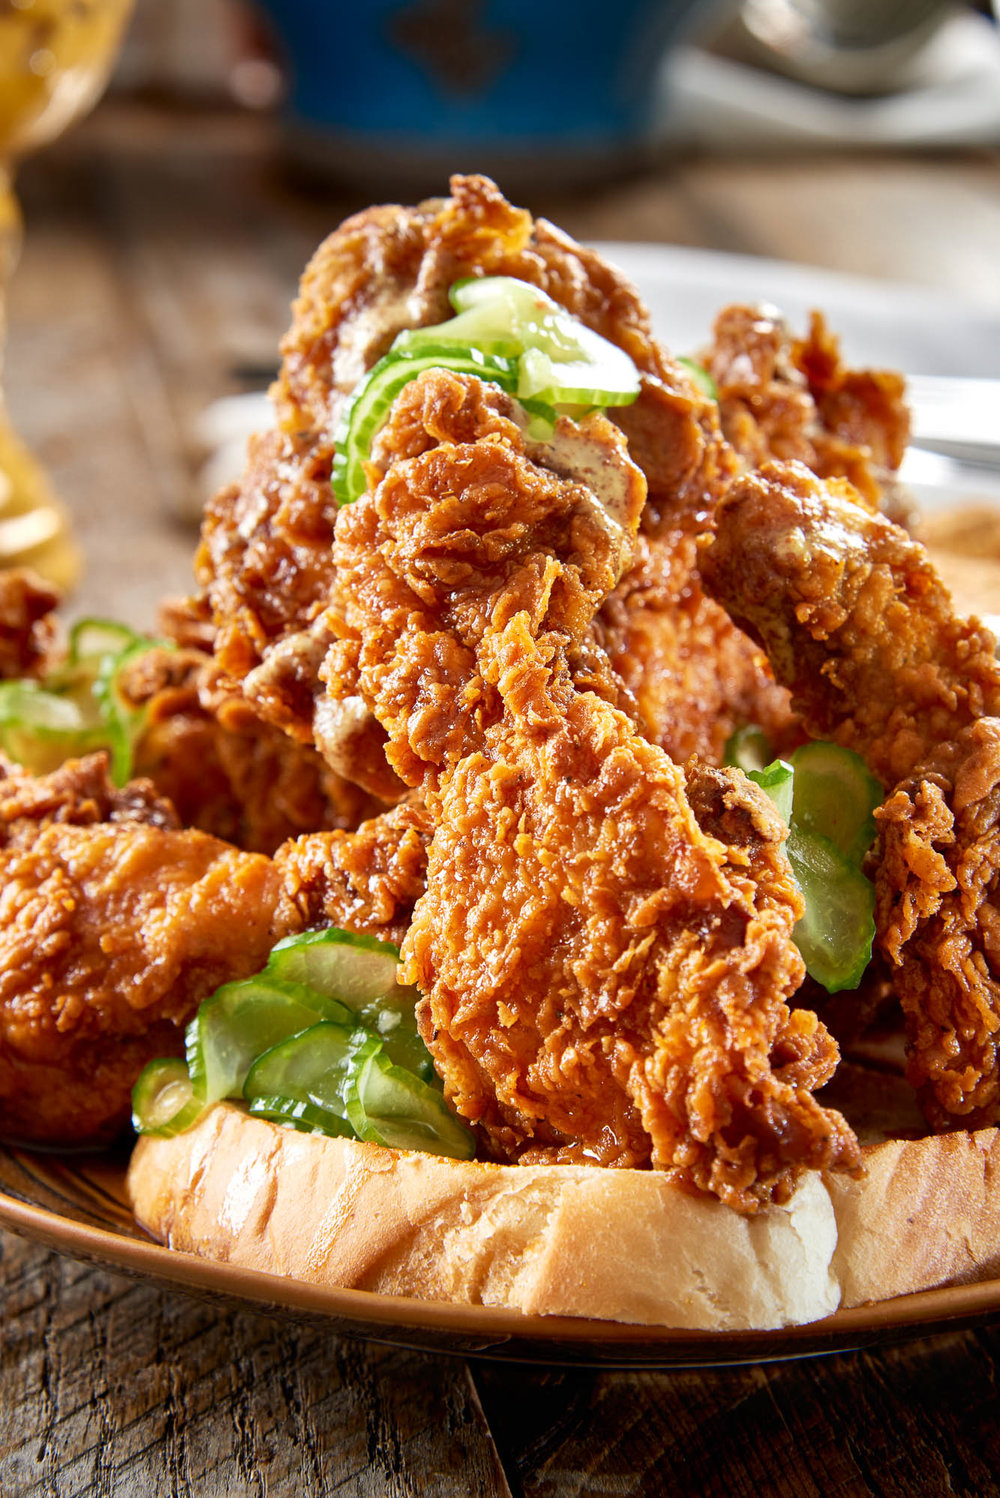 Copy of Fried Chicken and Waffle